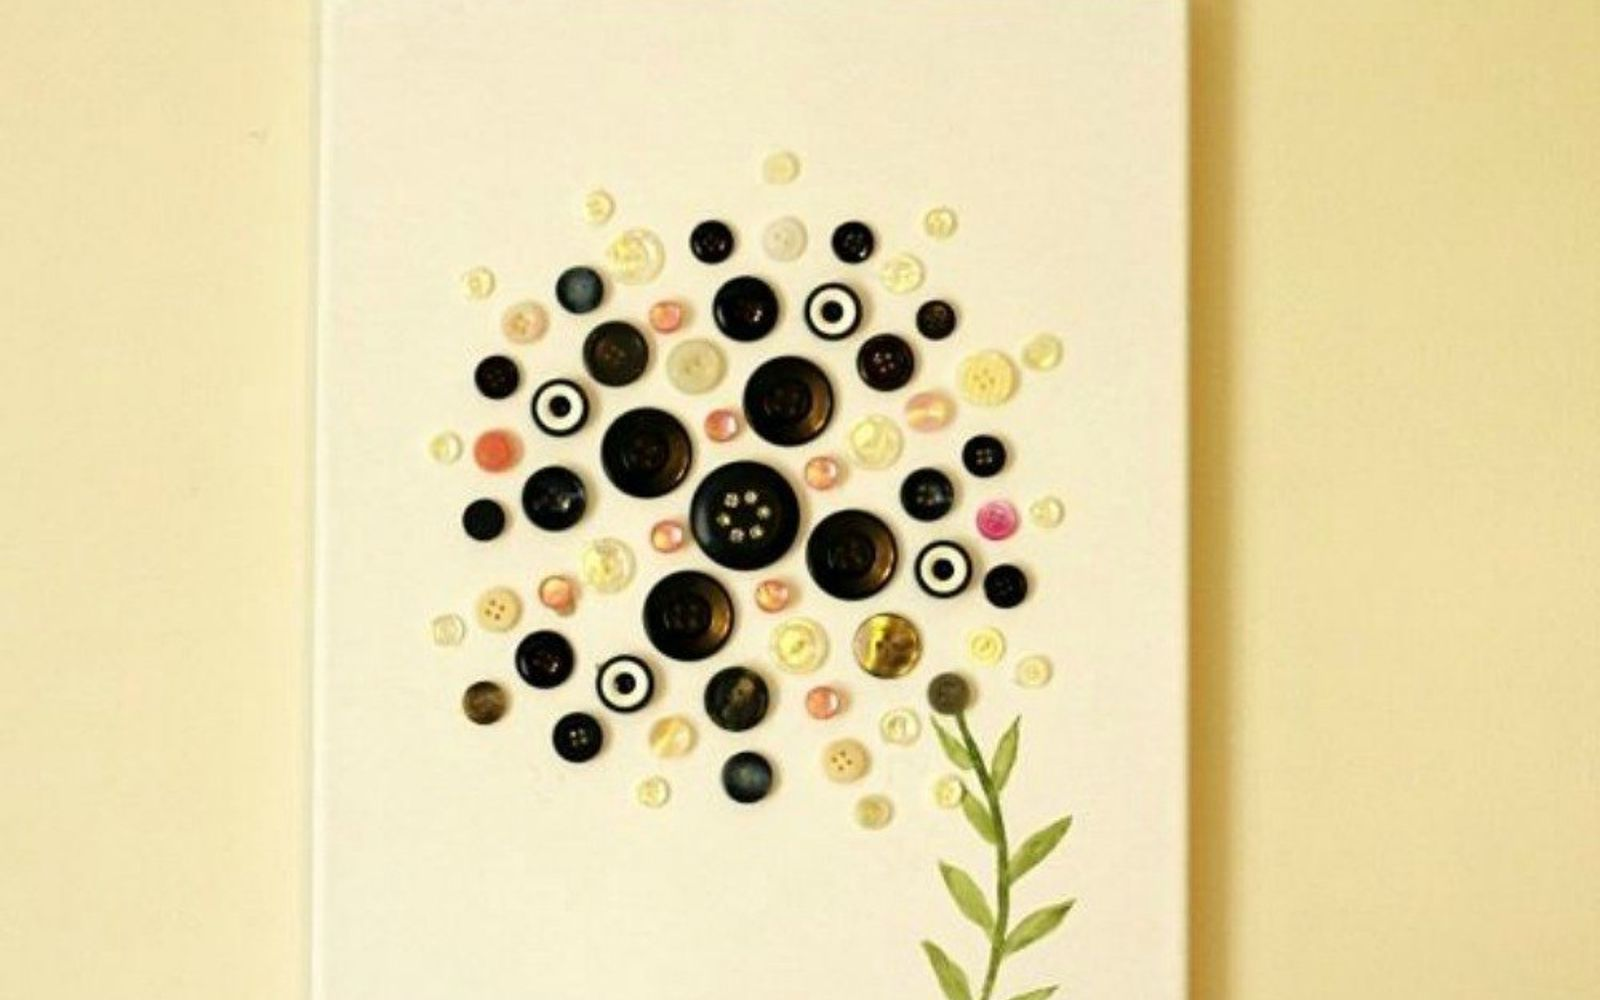 s 15 quick and easy gift ideas using buttons, Style them to create pretty canvas art